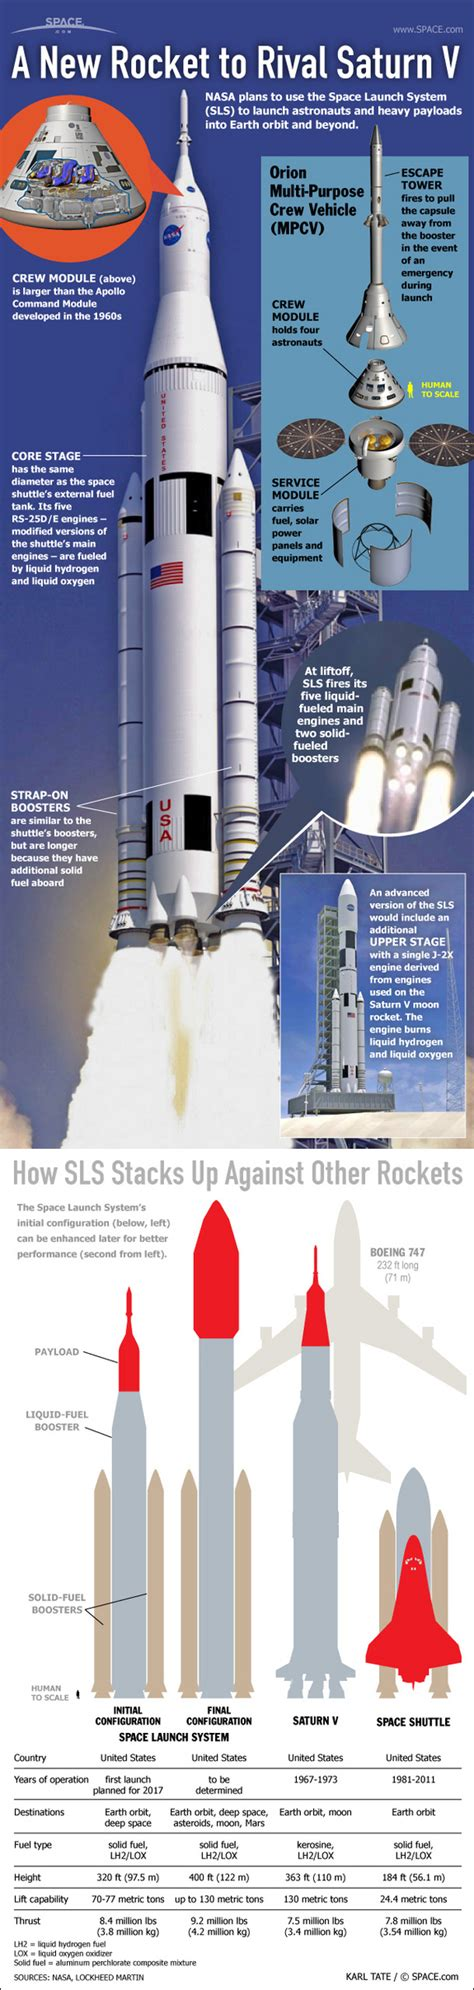 The sls is derived from proven technology used for decades in america